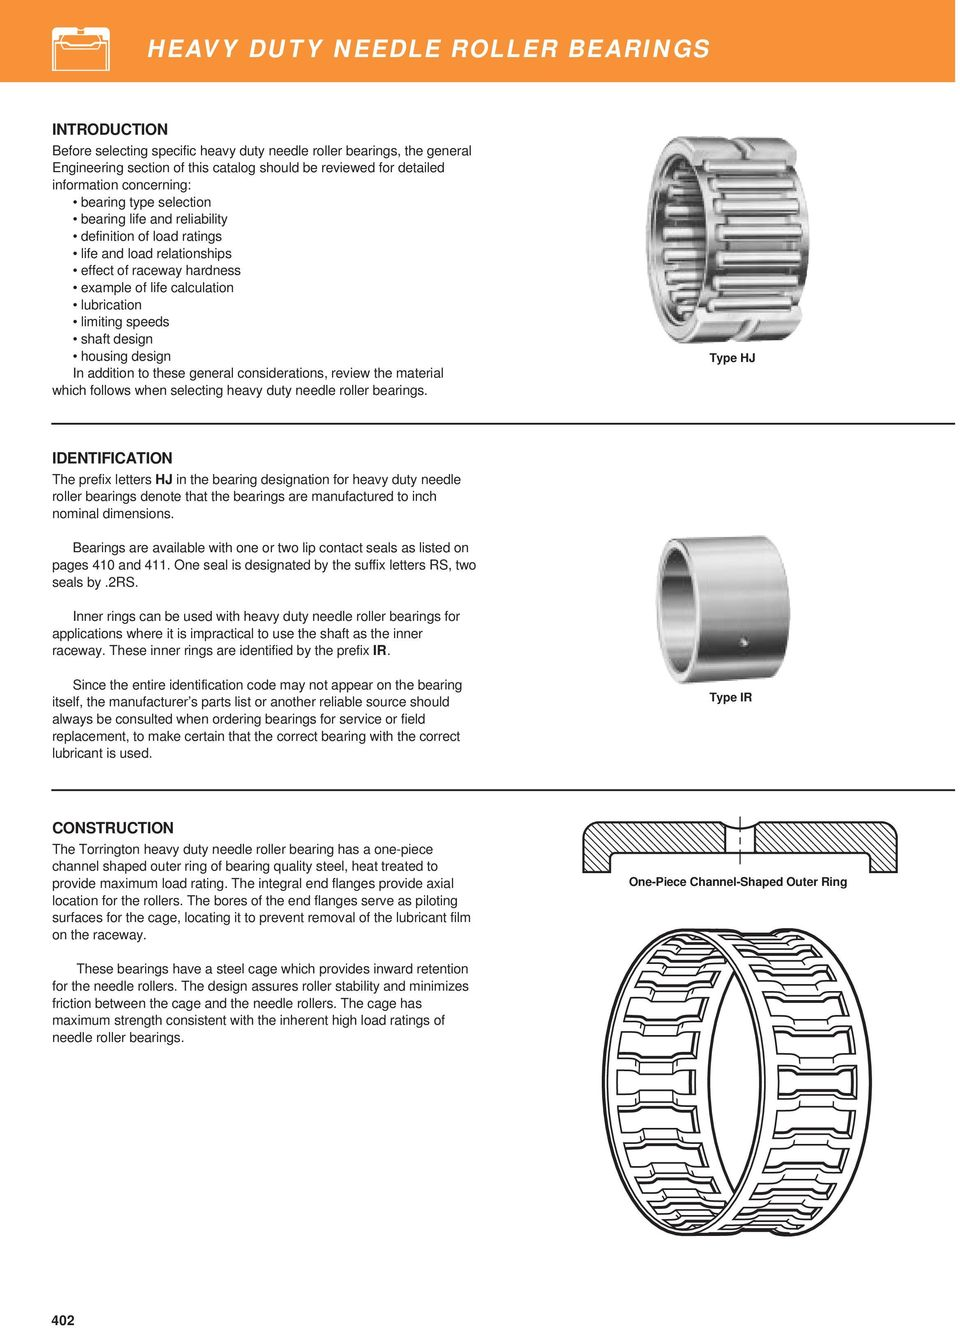 speeds shaft design housing design In addition to these general considerations, review the material which follows when selecting heavy duty needle roller bearings.